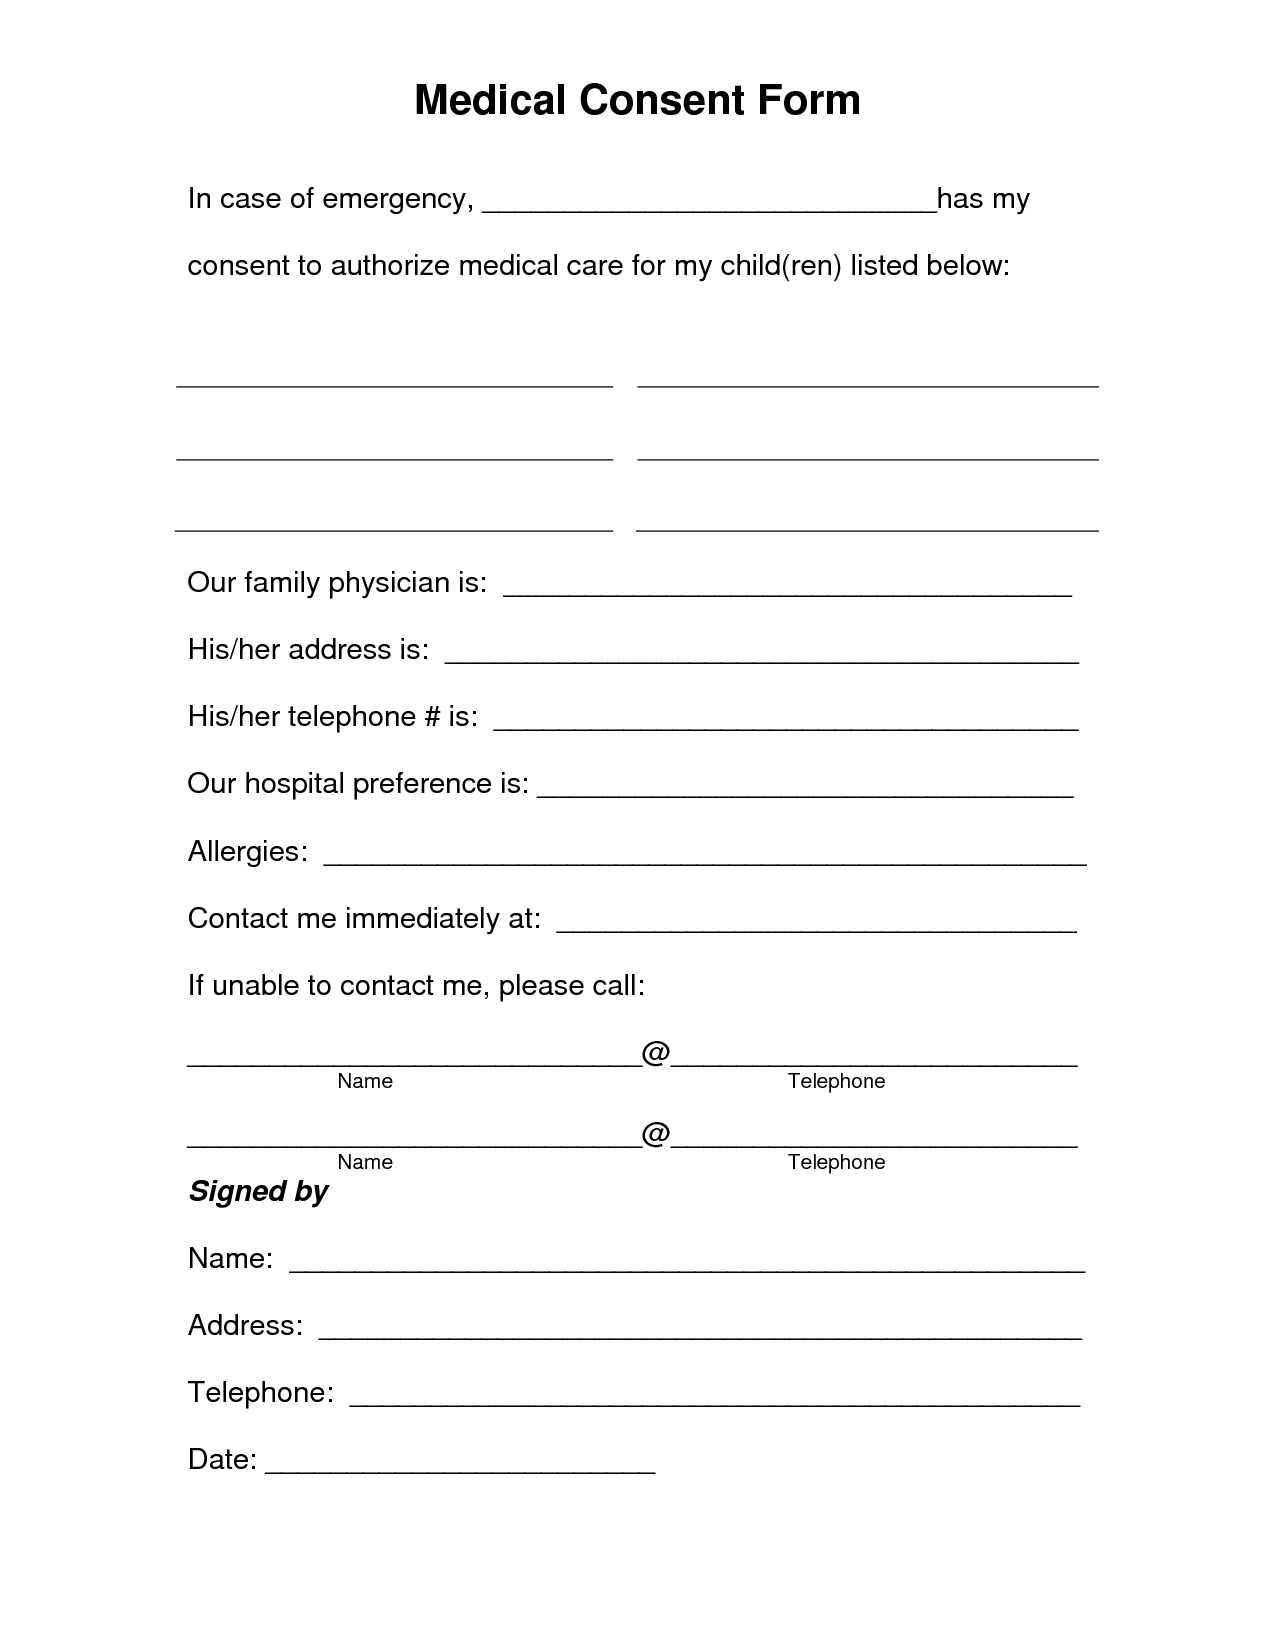 Free Printable Medical Consent Form – Sample Medical Consent Form